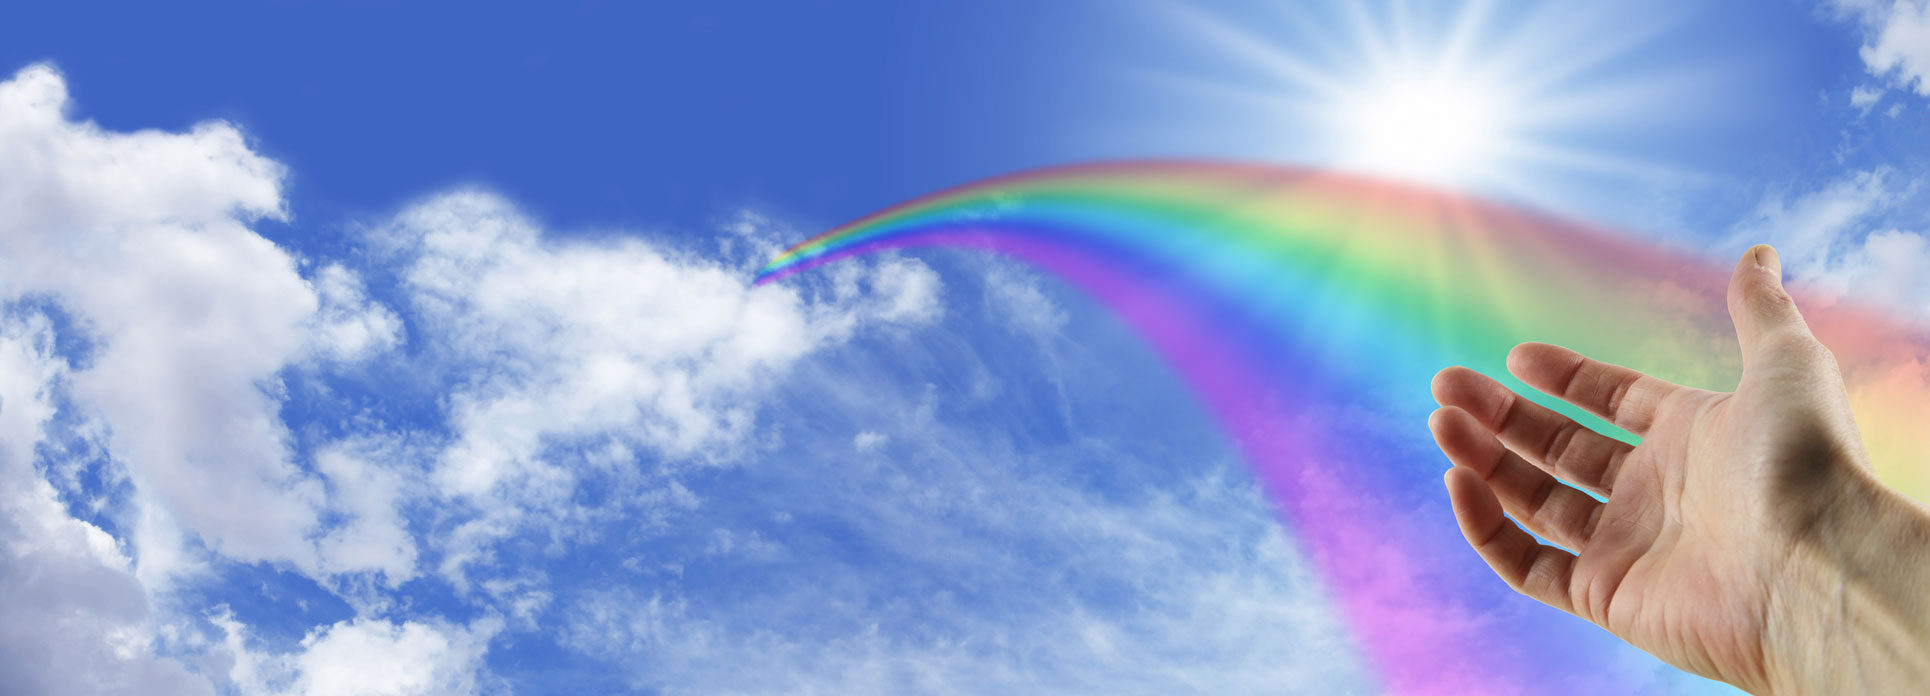 Cloud-rainbow-1930x696